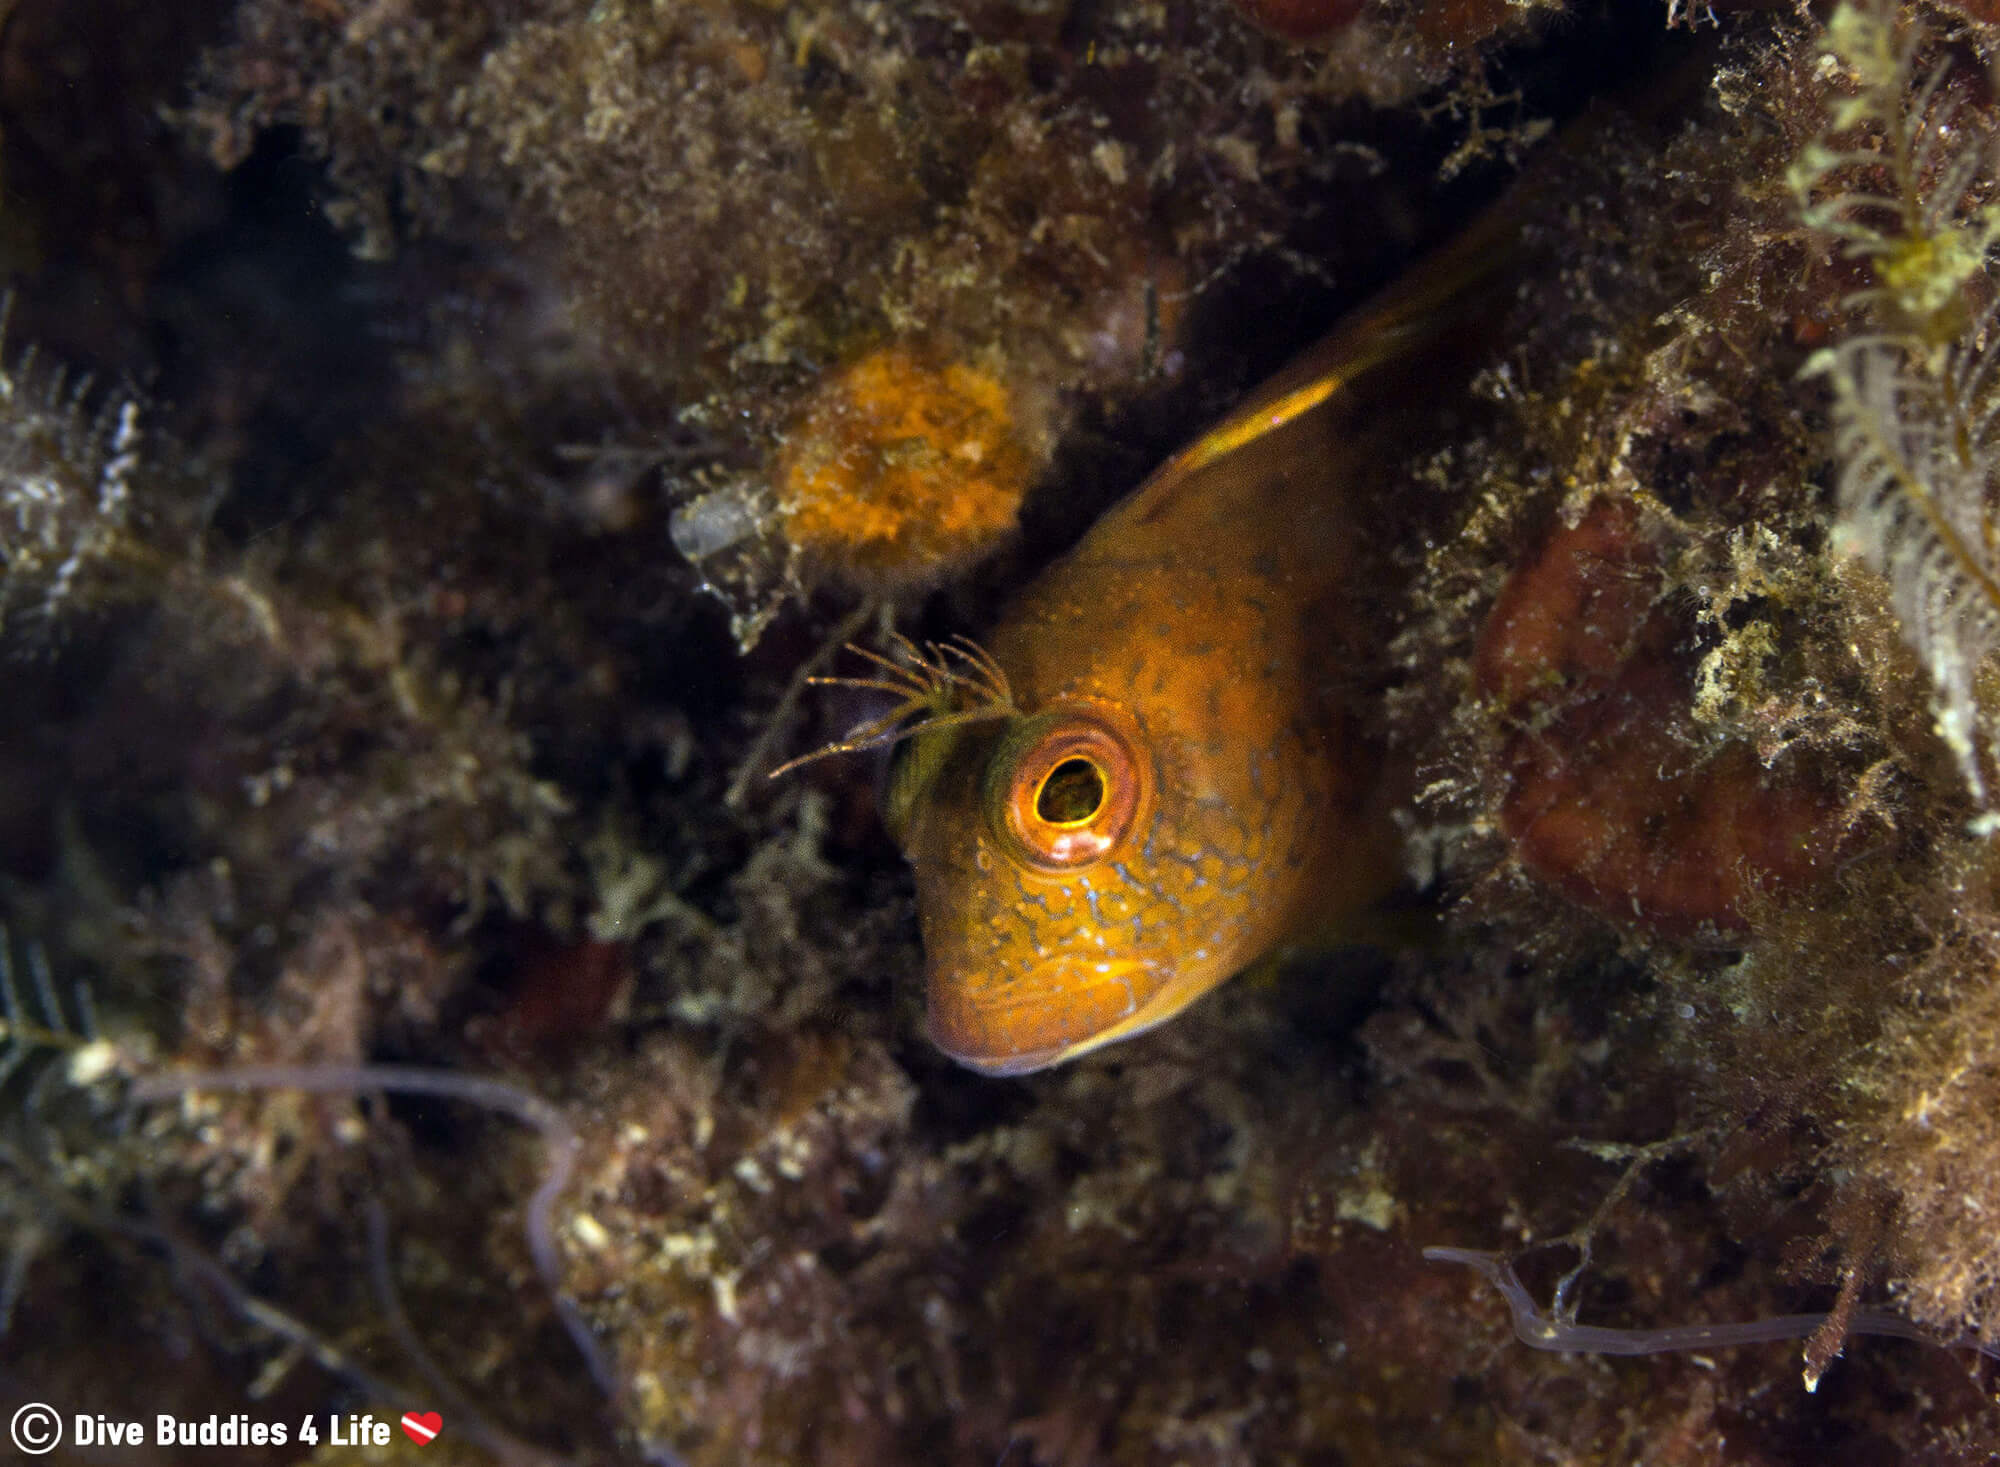 A Yellow Blennny Fish In The Marine Plant Life Of Costa Del Sol In Spain, Europe